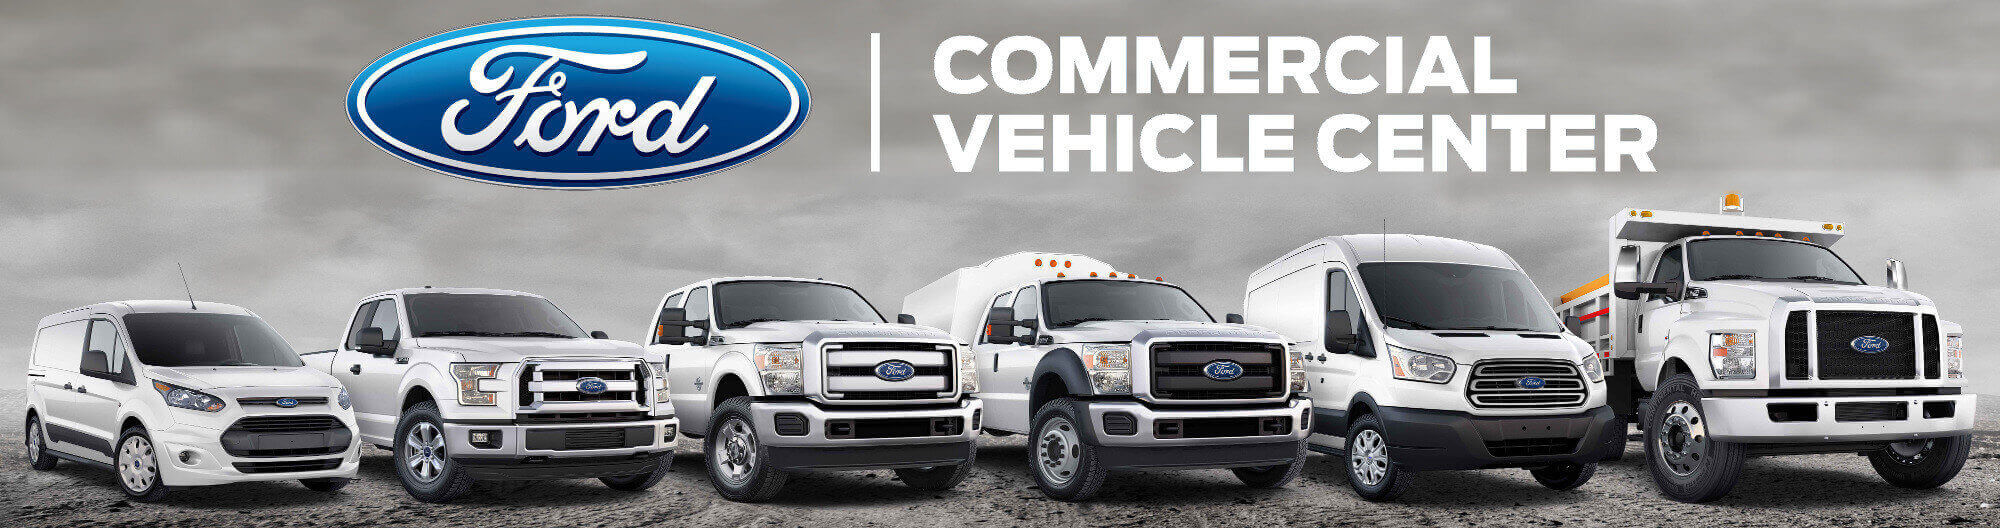 Reynolds ford commercial vehicle center 405 217 3993